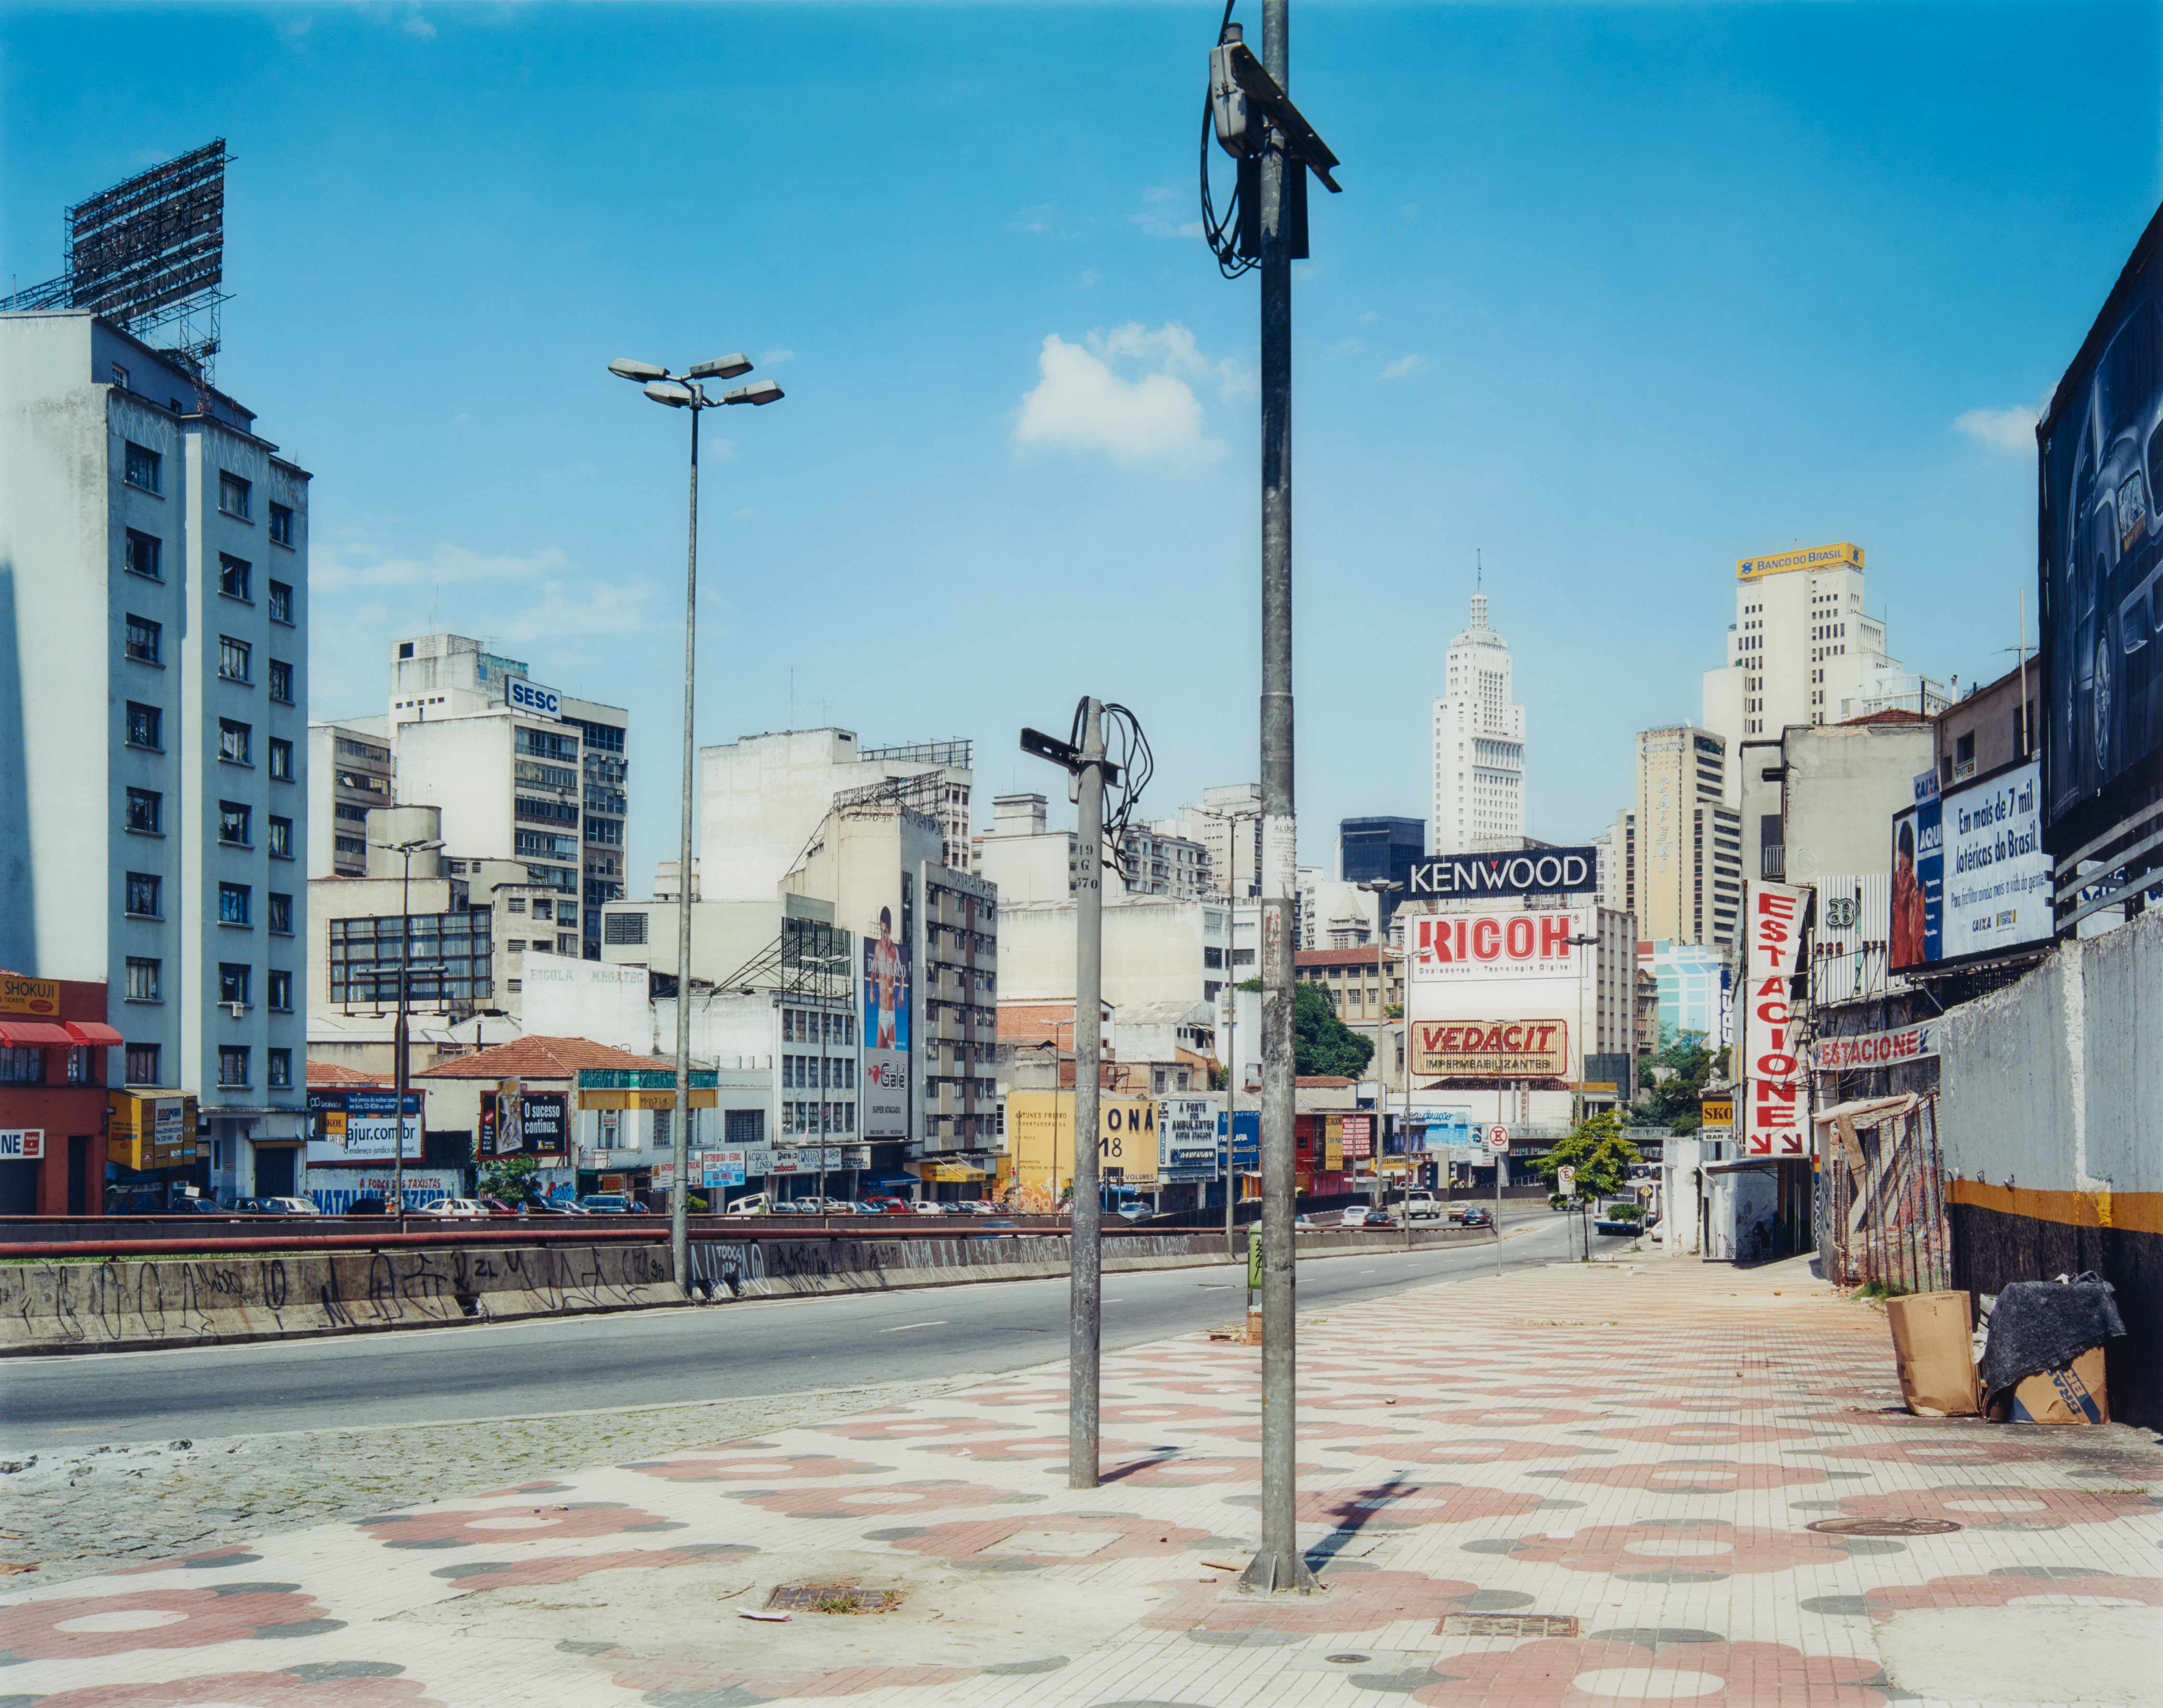 Thomas Struth 'Avenida Tiradentes,' Sao Paolo, 2001 C-print, 136 x 172,6cm. Estimated price: 20,000-30,000 euros ($22,530-$33,792). Photo courtesy of Van Ham Kunstauktionen